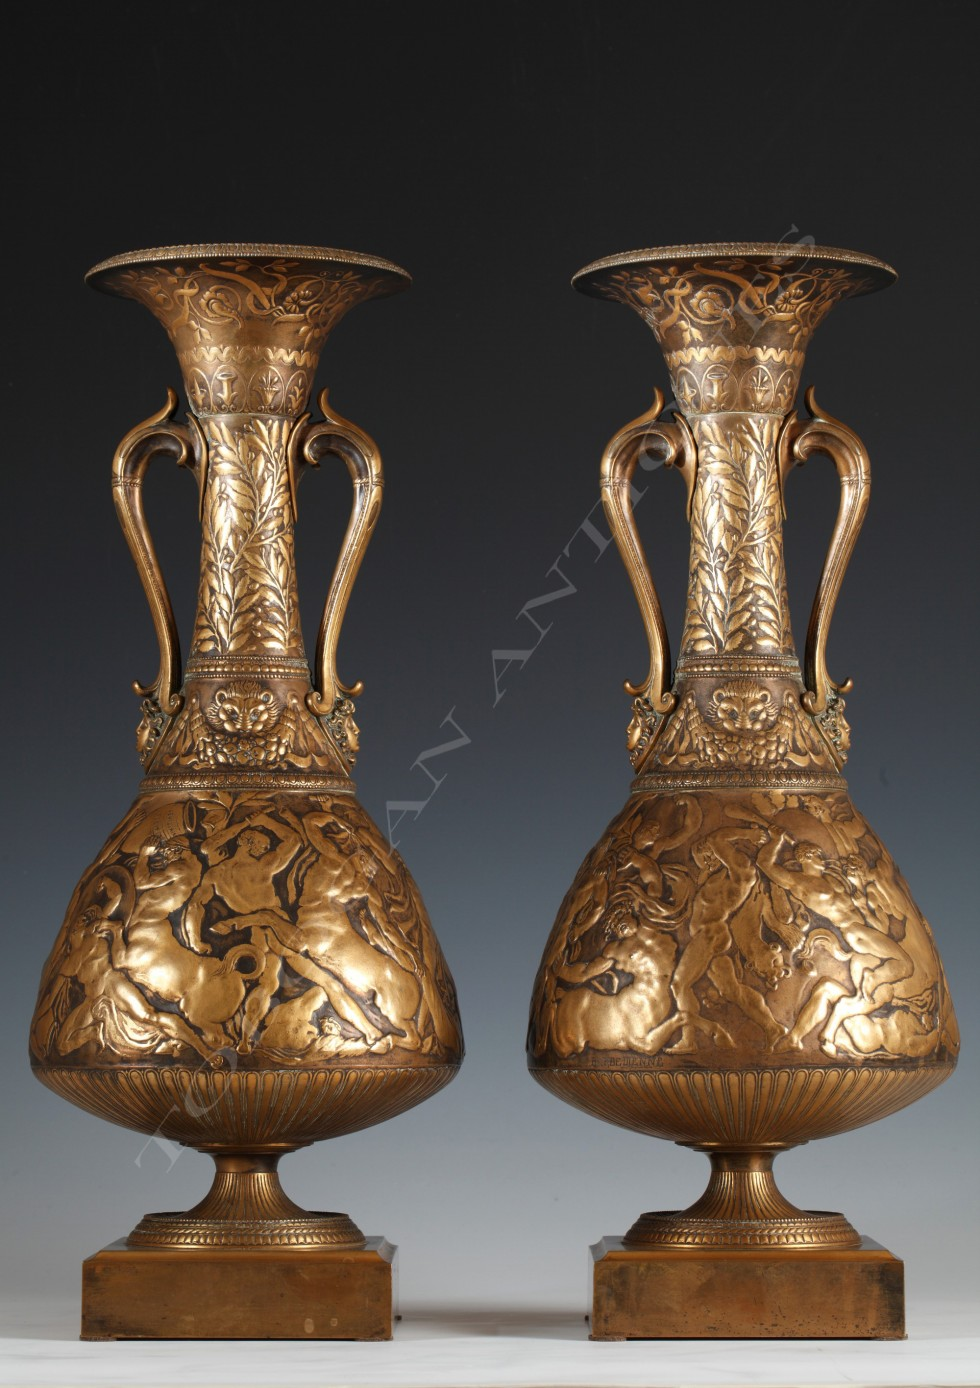 F. Levillain & F. Barbedienne<br/> Pair of Greek Revival Vases